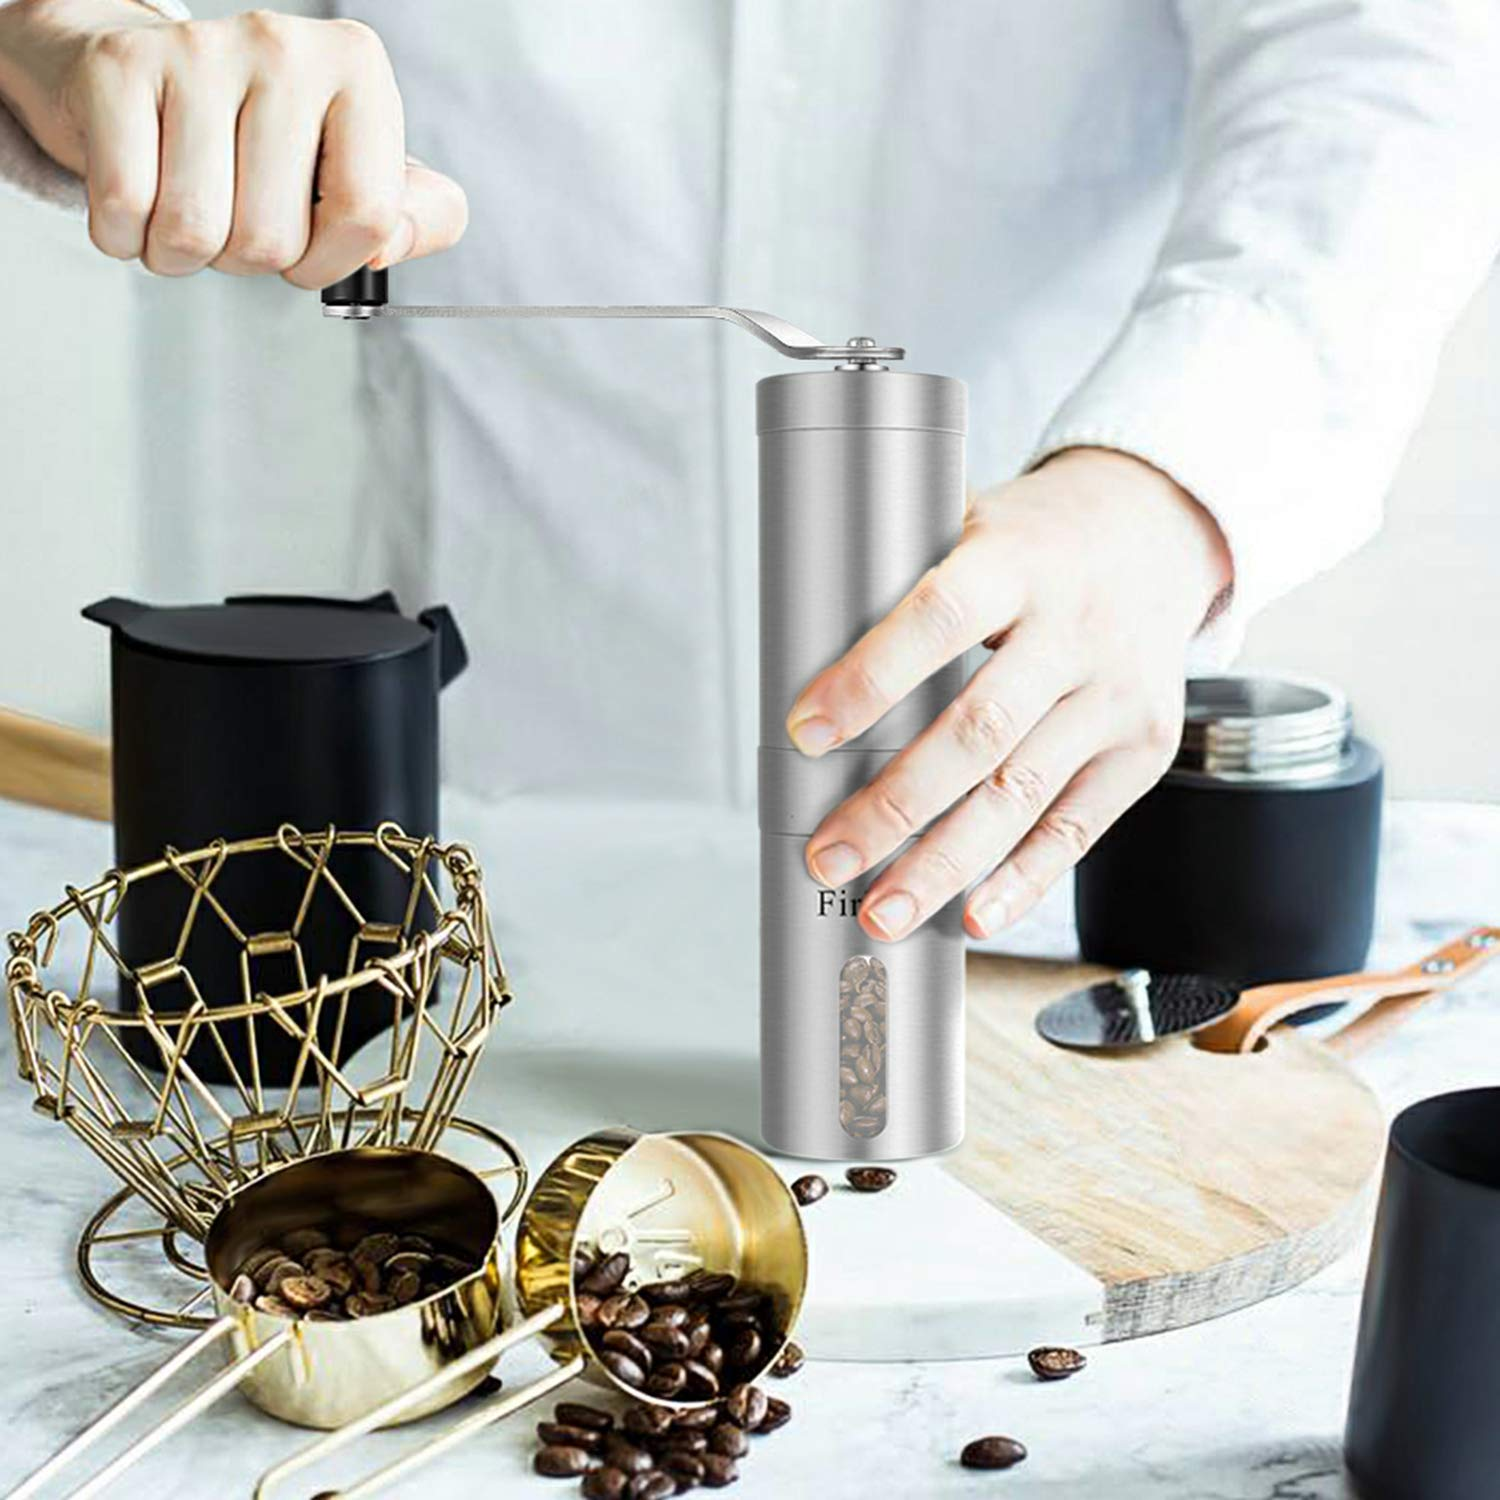 Firlar-Premium-Manual-Coffee-Grinder-Stainless-Steel-Body-Adjustable-Ceramic-Conical-Burr-Hand-Crank-Mill-Grinds-Beans-Spices-Brushed